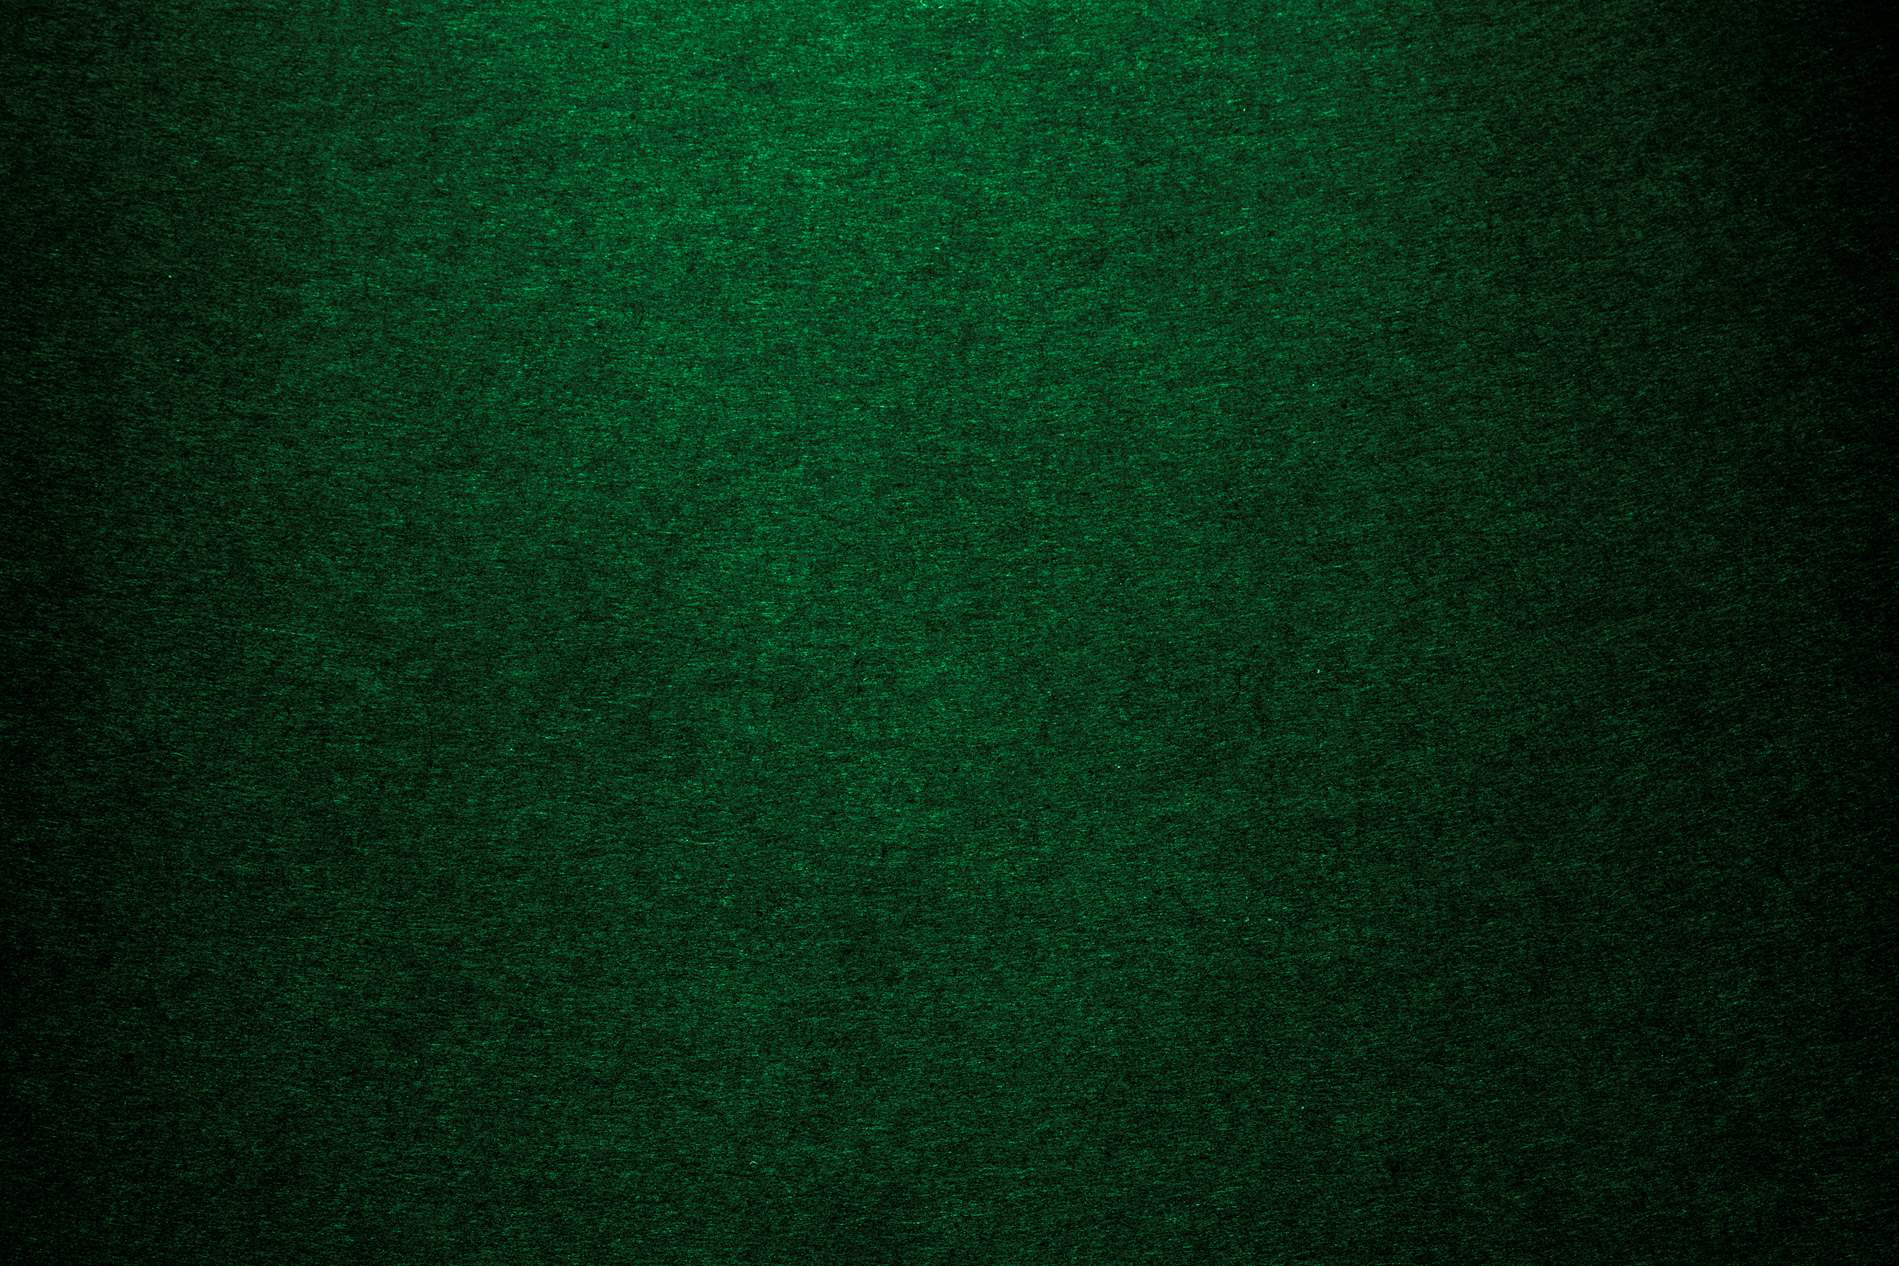 green texture wallpaper from - photo #36